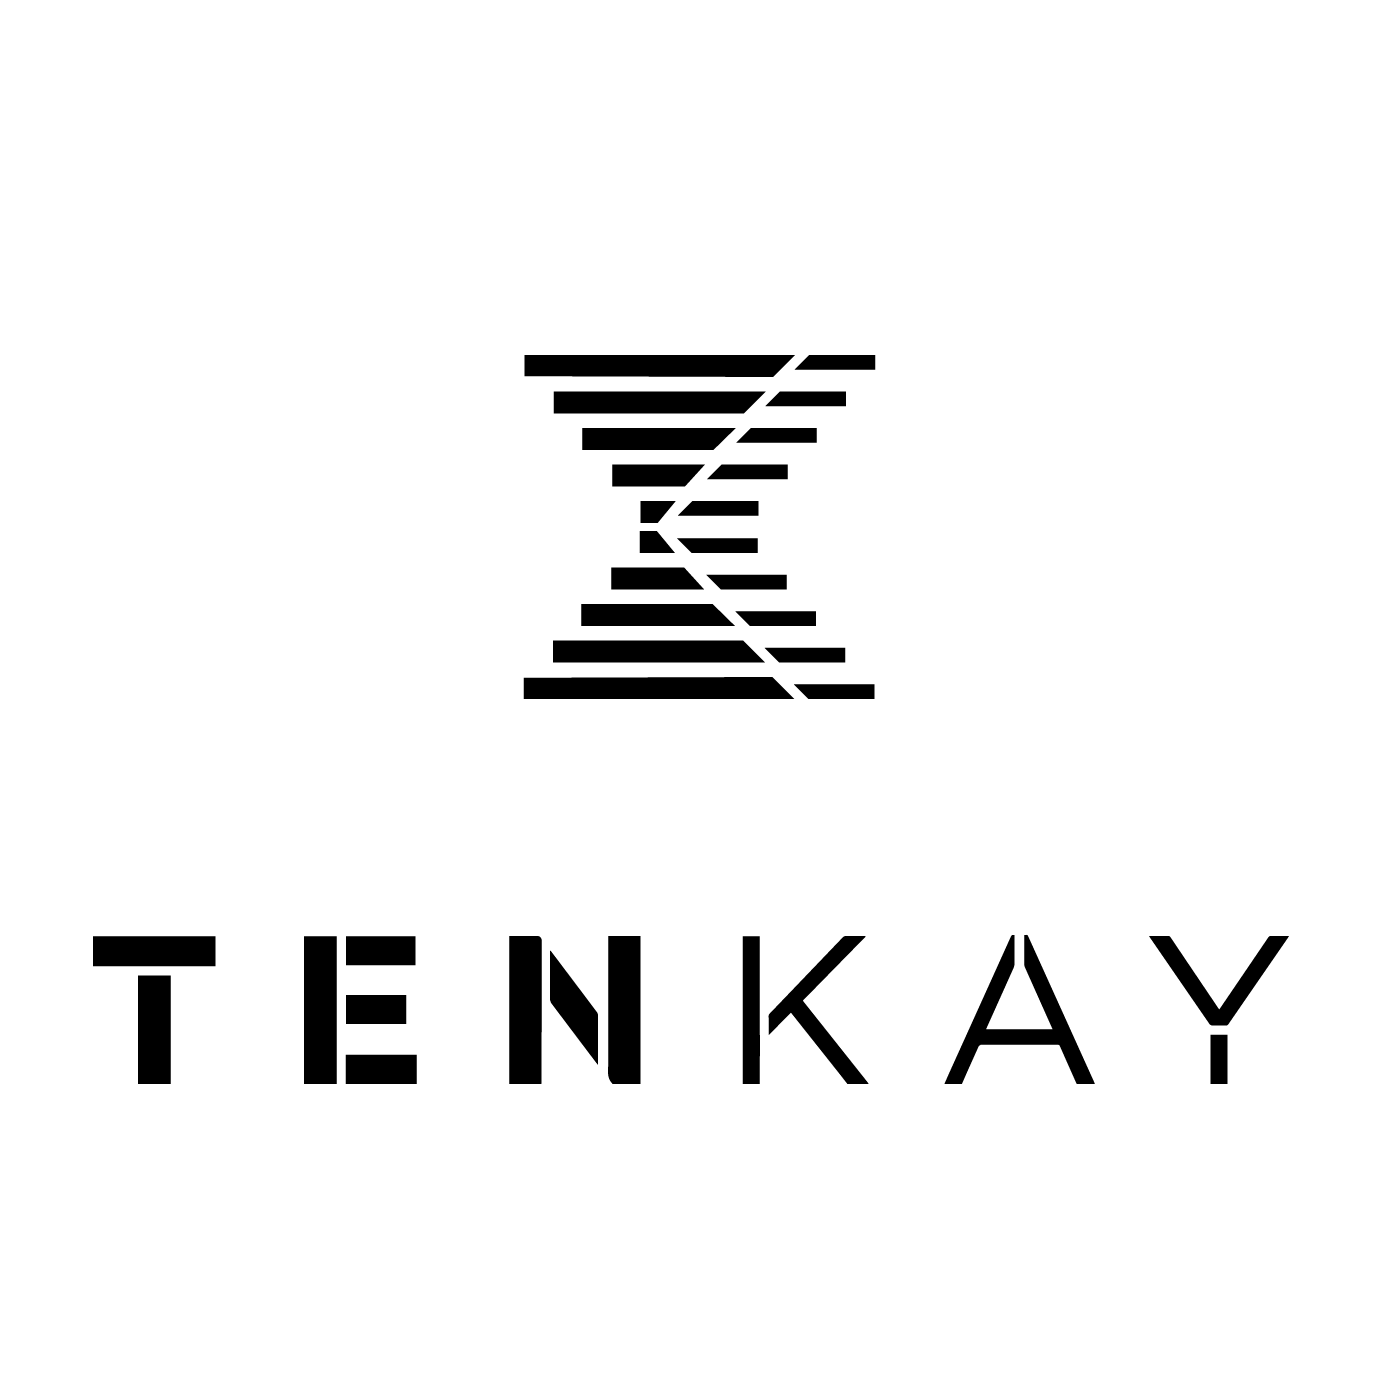 Tenkay Logo Play Outline